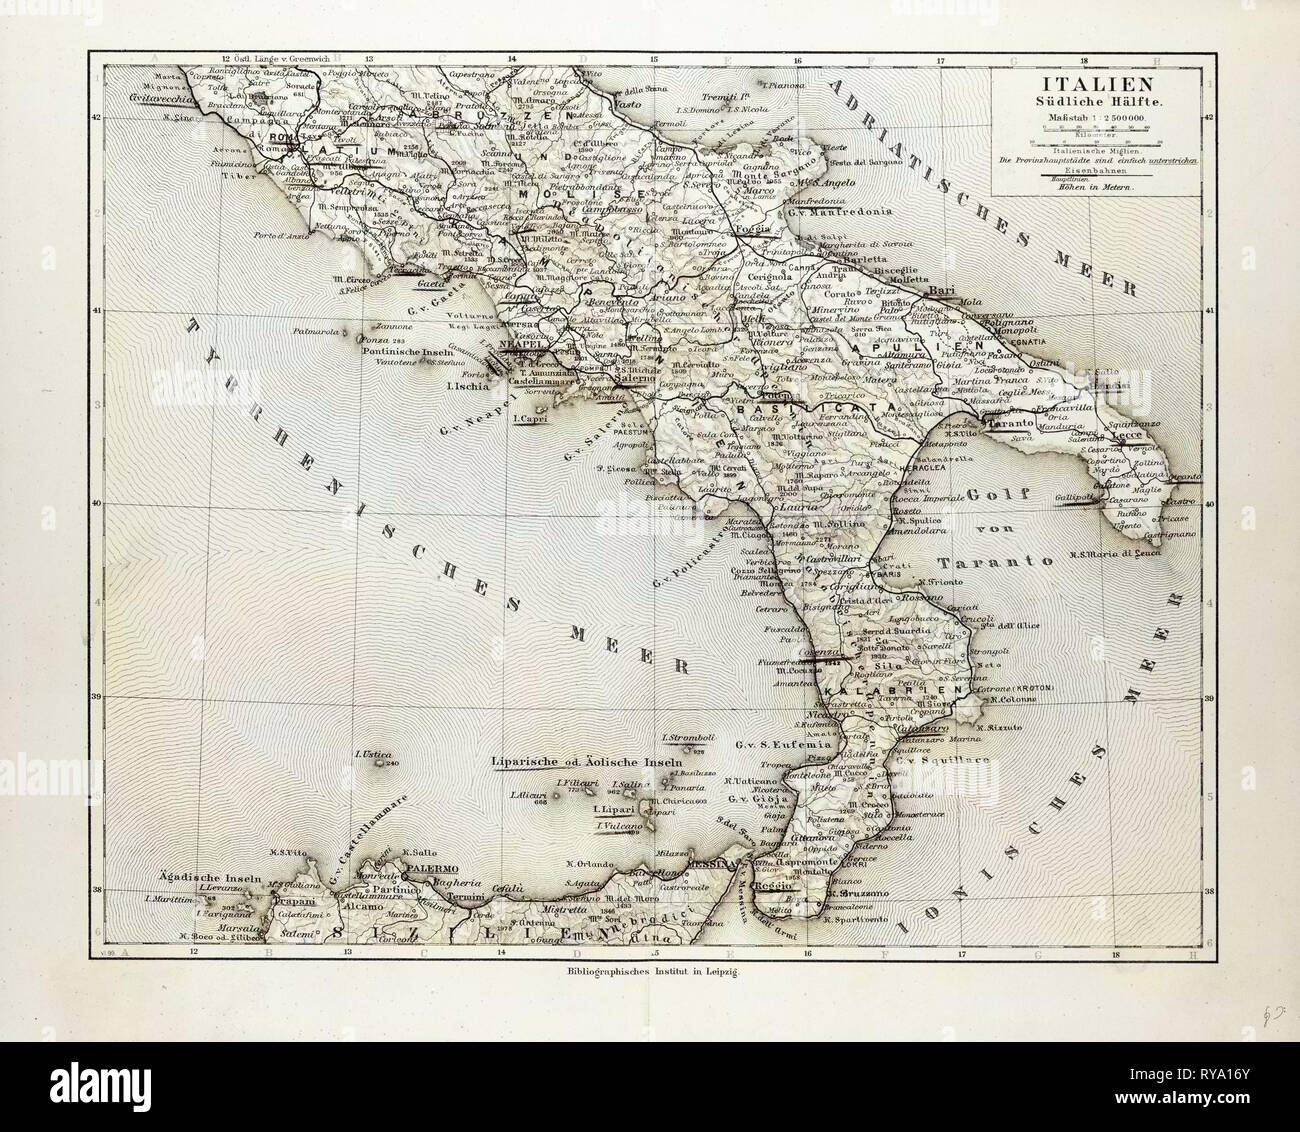 Map Of South Italy.Map Of South Italy 1899 Stock Photo 240550995 Alamy